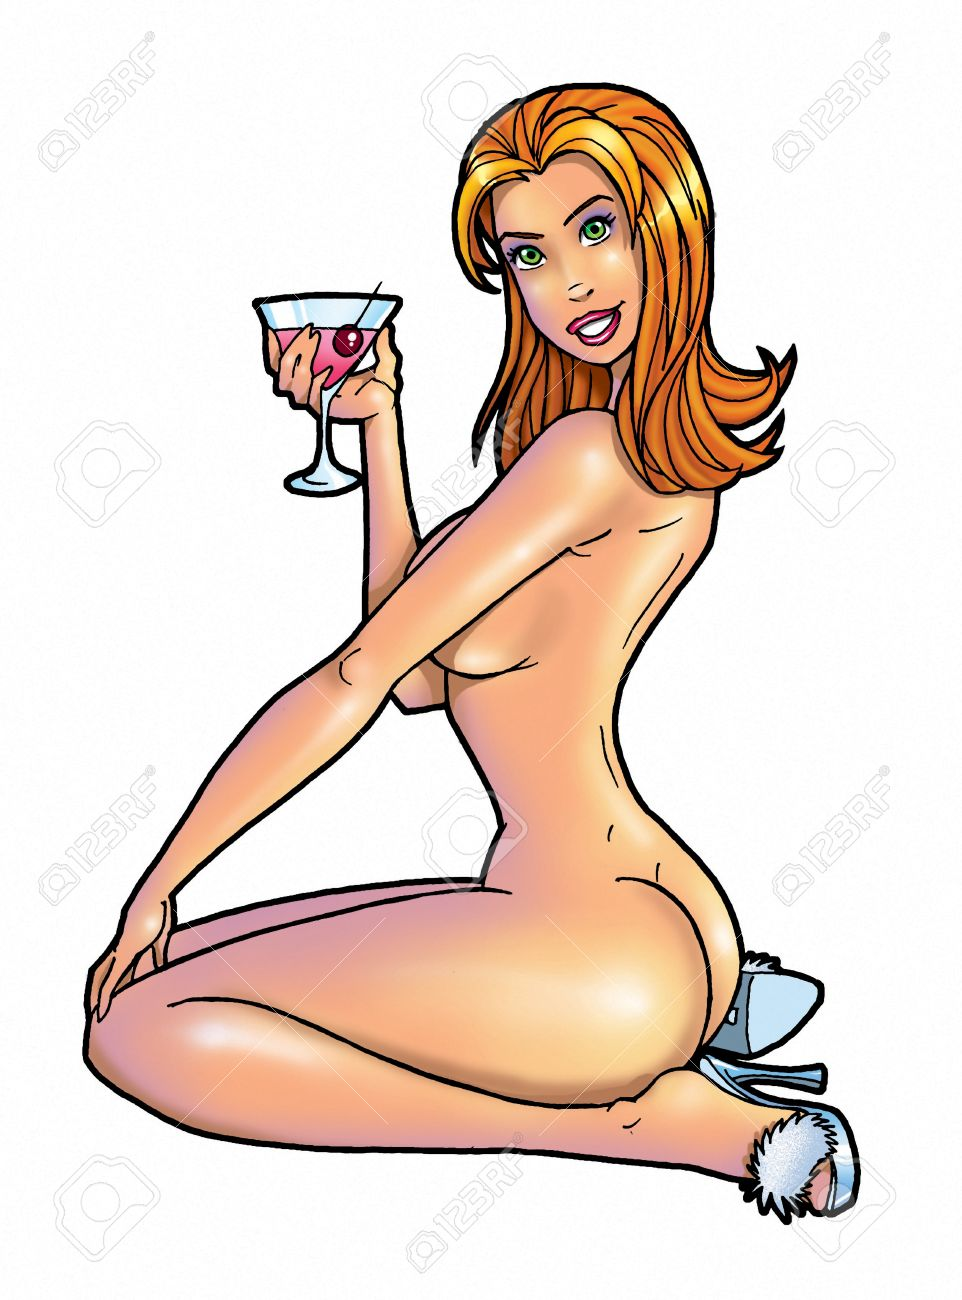 Nude cartoon girl picture nsfw pictures